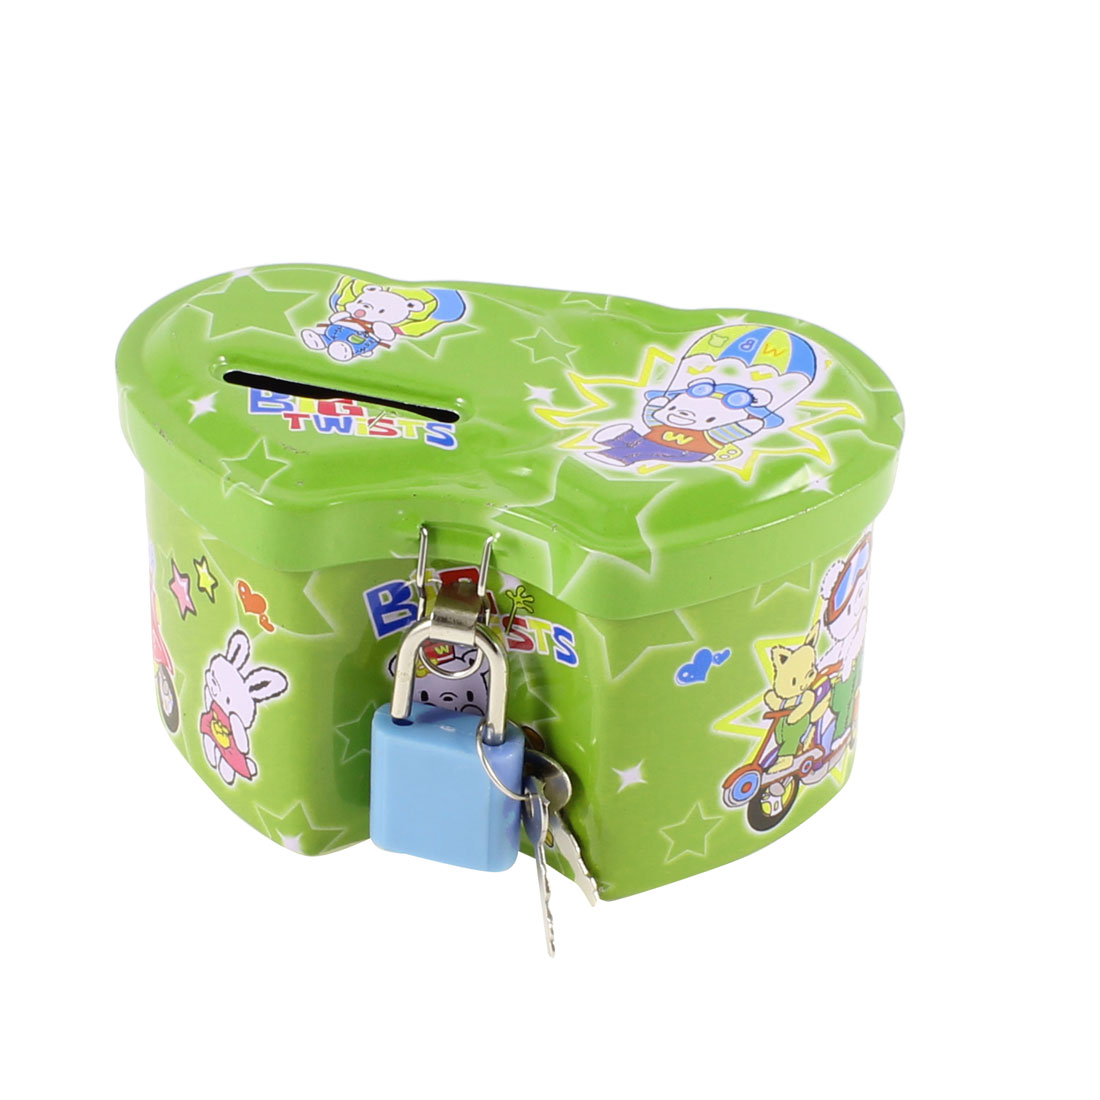 Child Double Heart Design Coin Saving Money Box Piggy Bank Green w Padlock